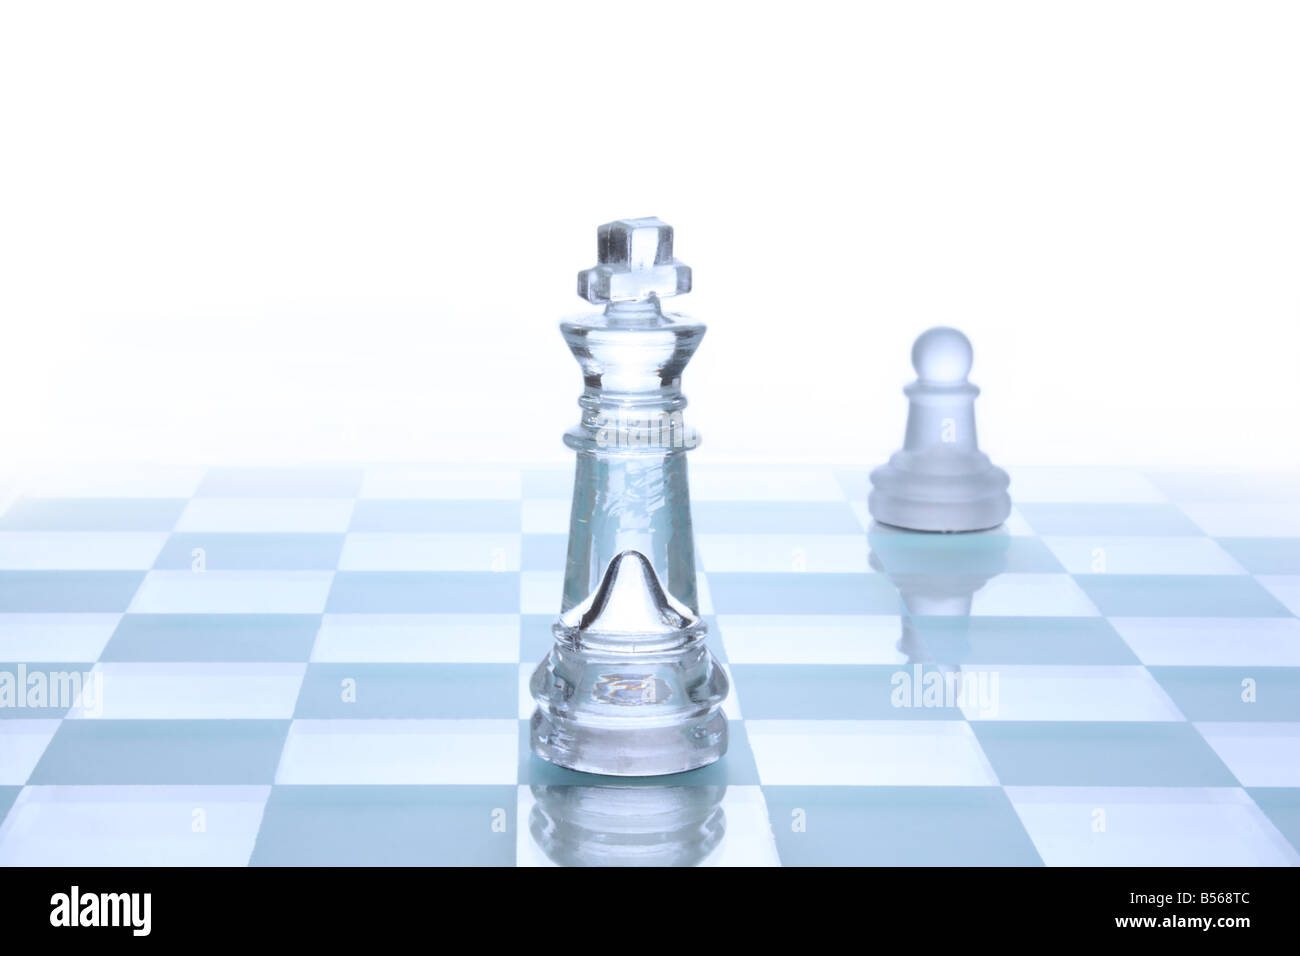 Translucent glass chess figures on a board - Stock Image